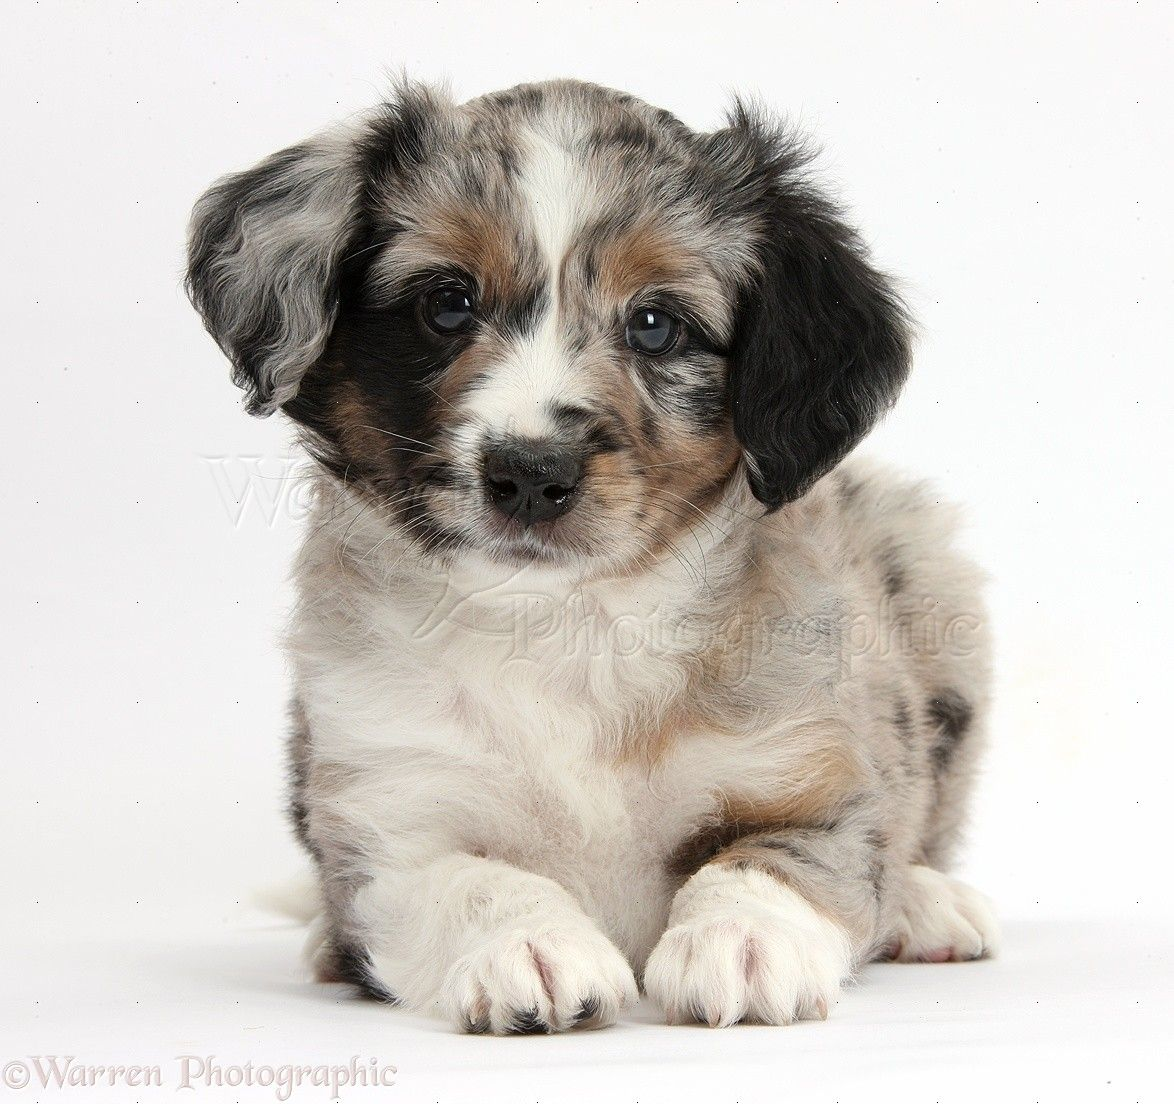 Dog Merle Mini American Shepherd Puppy Photo American Shepherd Miniature American Shepherd Shepherd Puppies